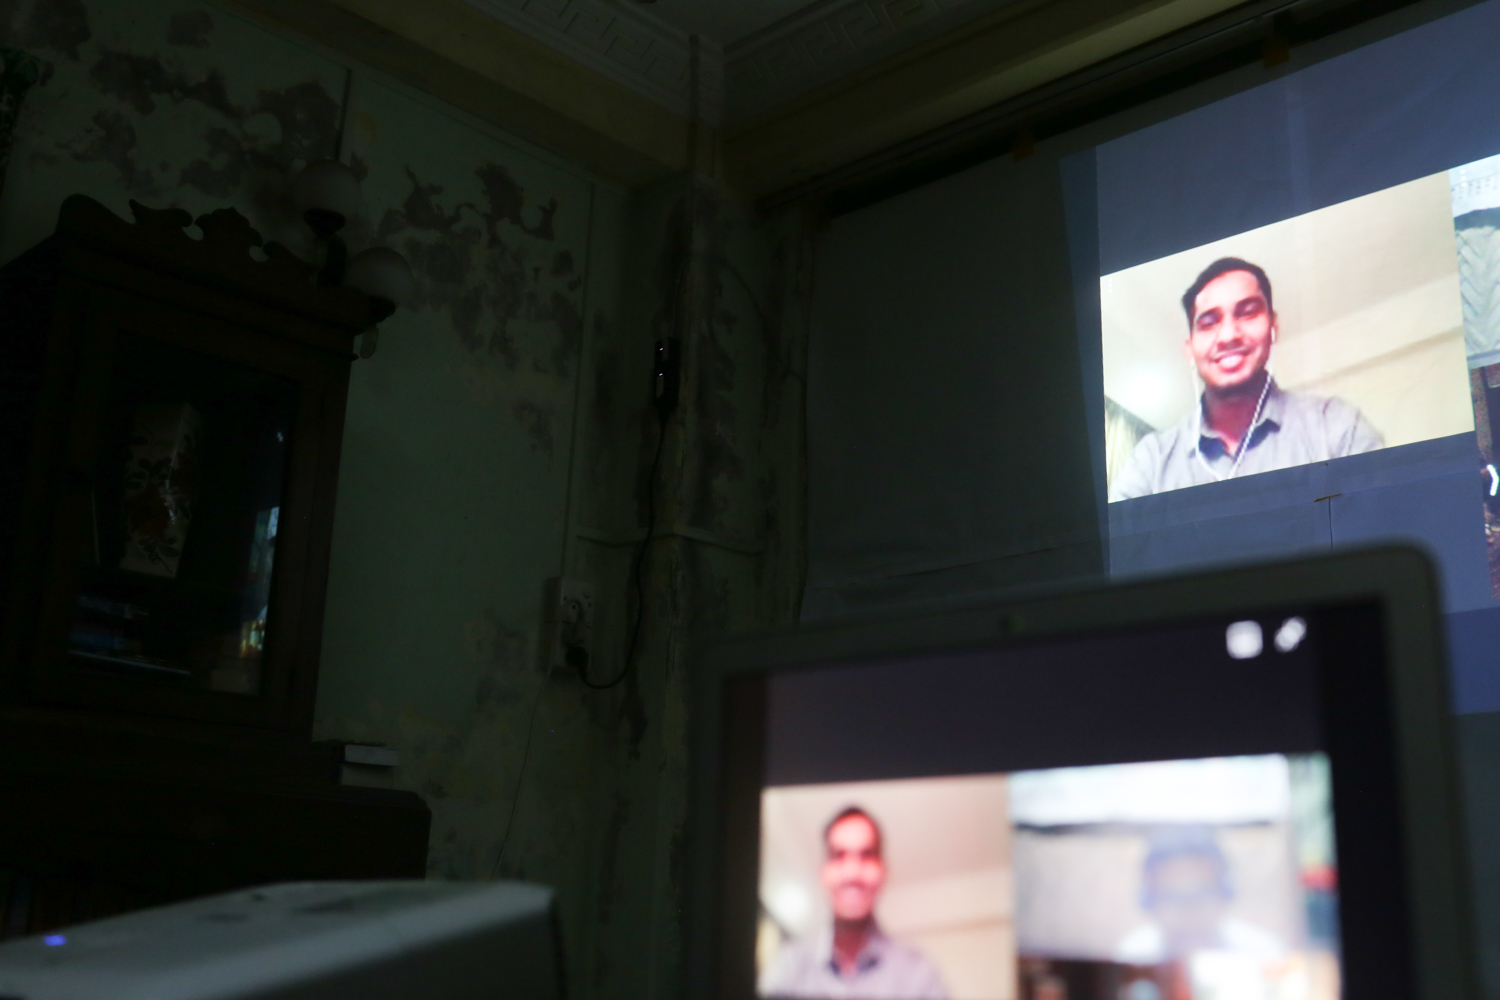 A man appears on a large screen wearing headphones in a video call